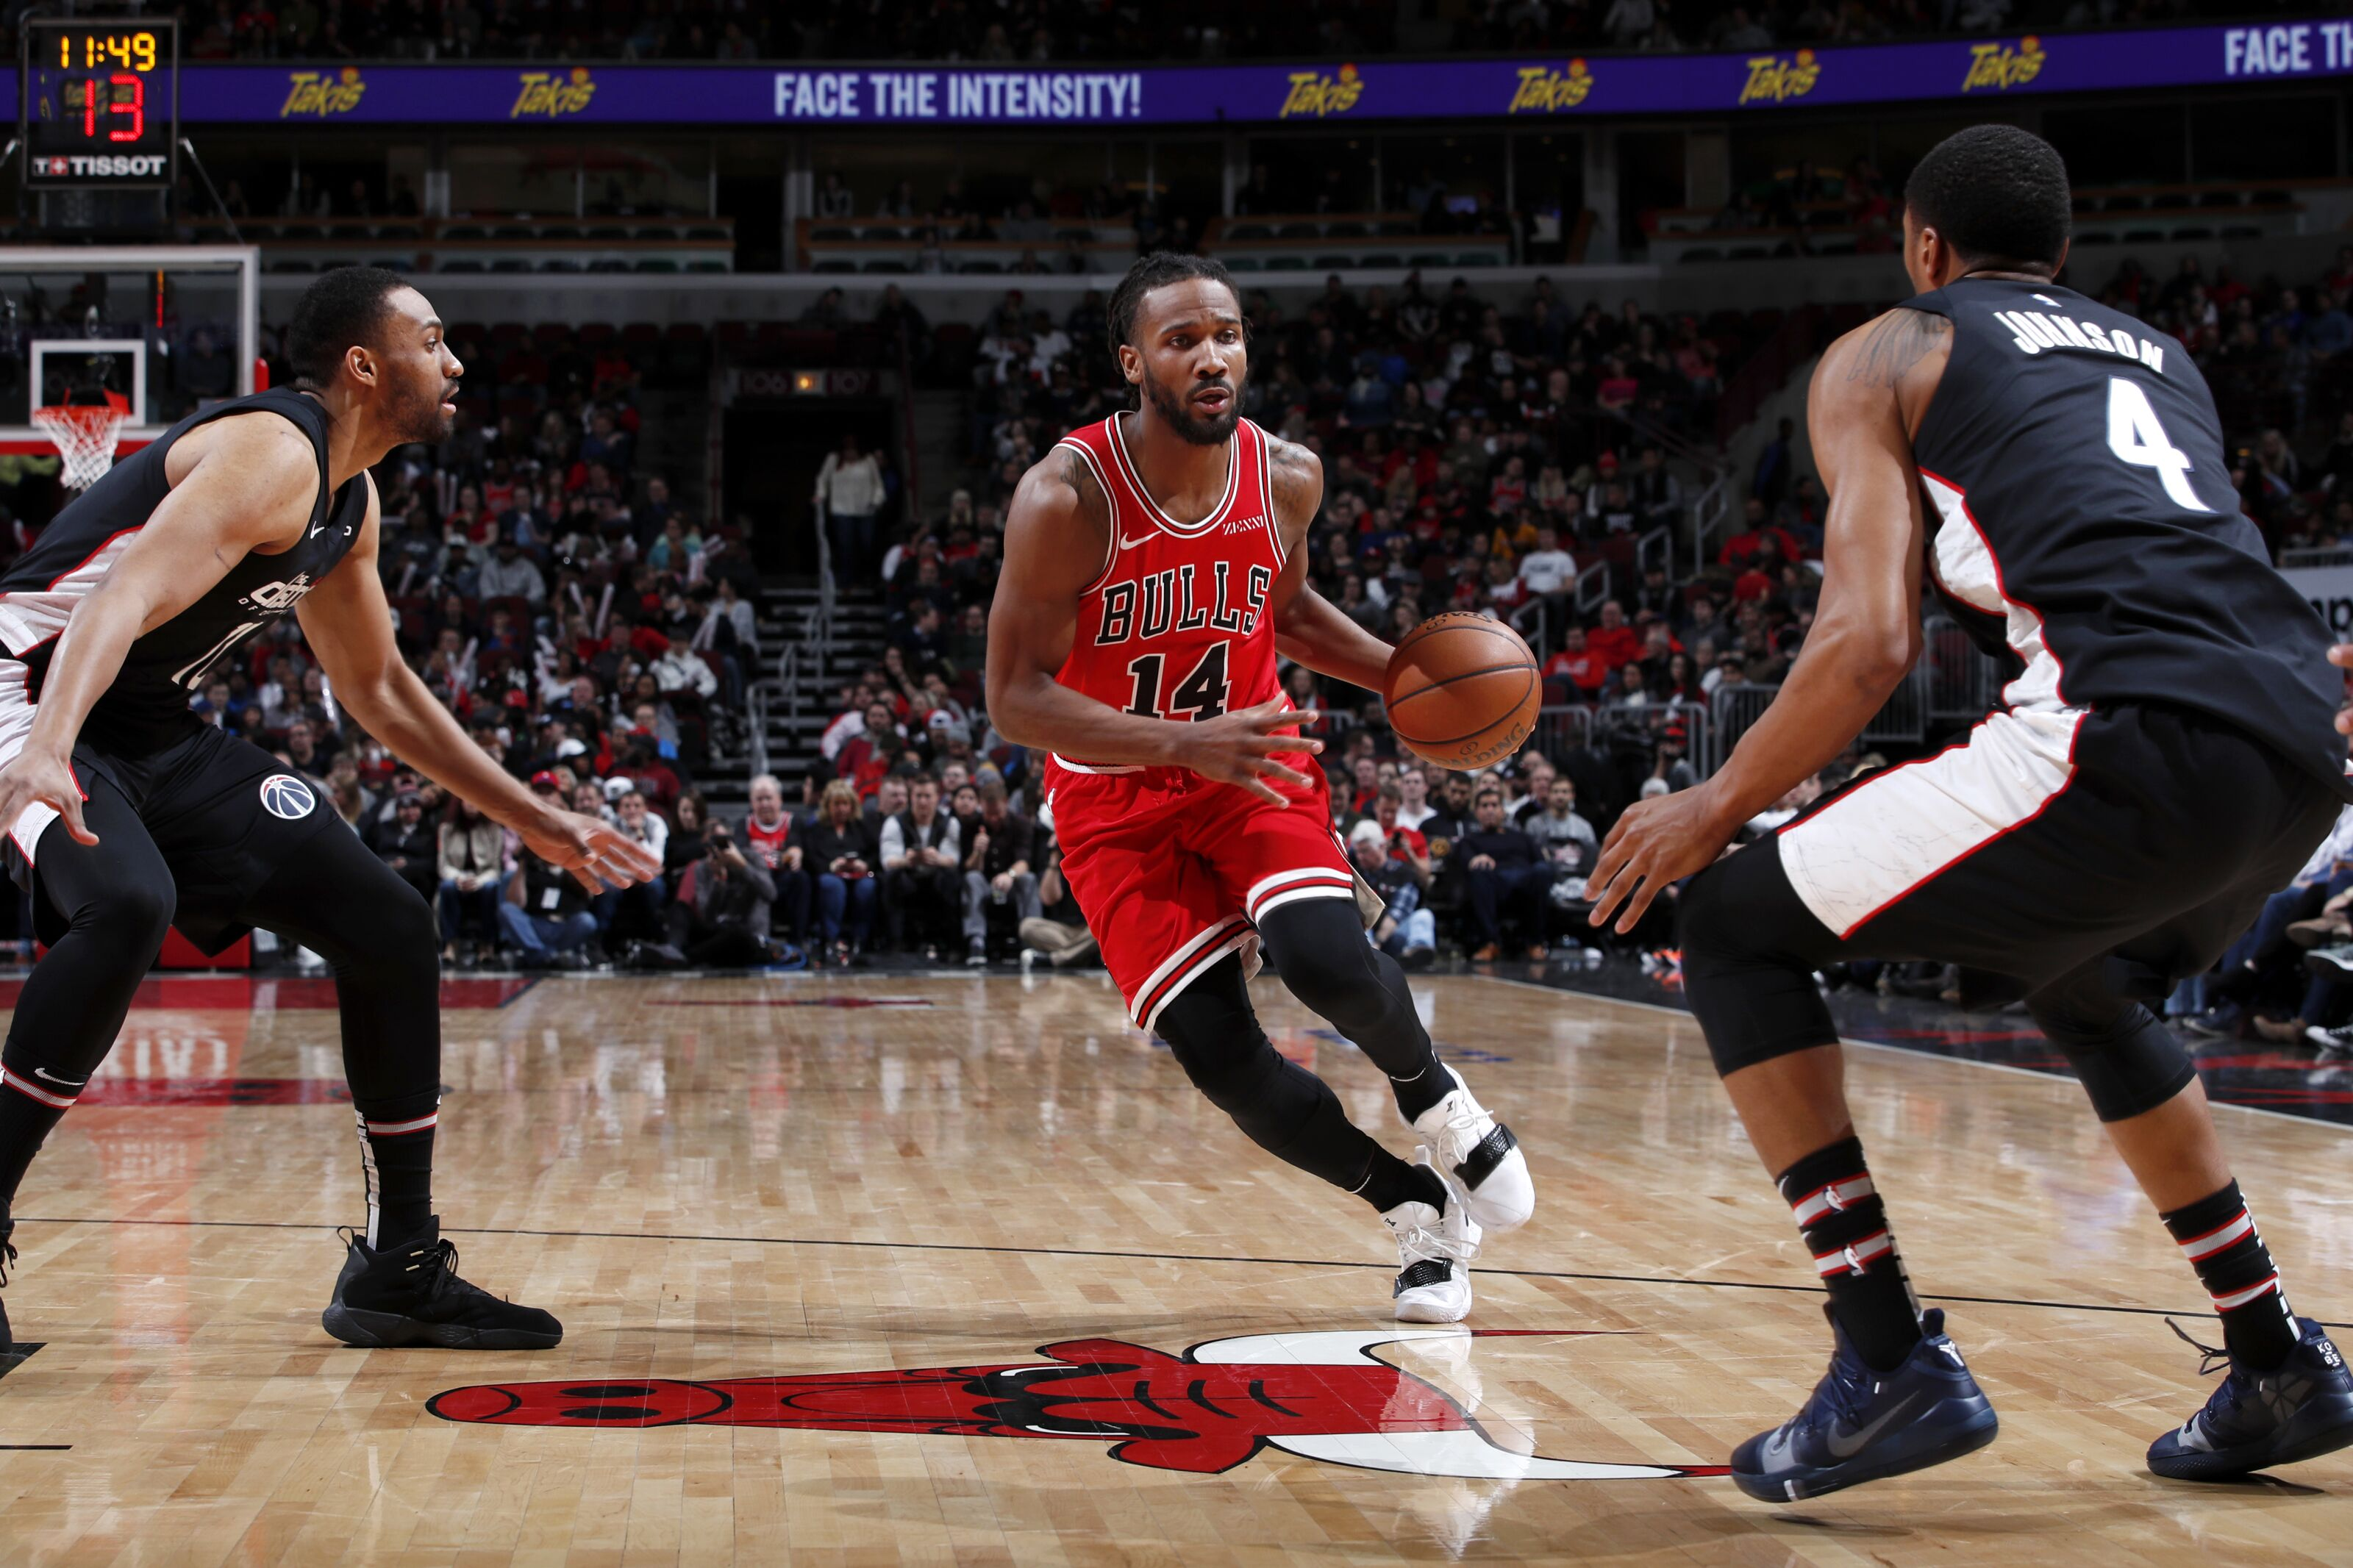 Chicago Bulls: Wayne Selden Jr. plays well in emotional loss to Wizards